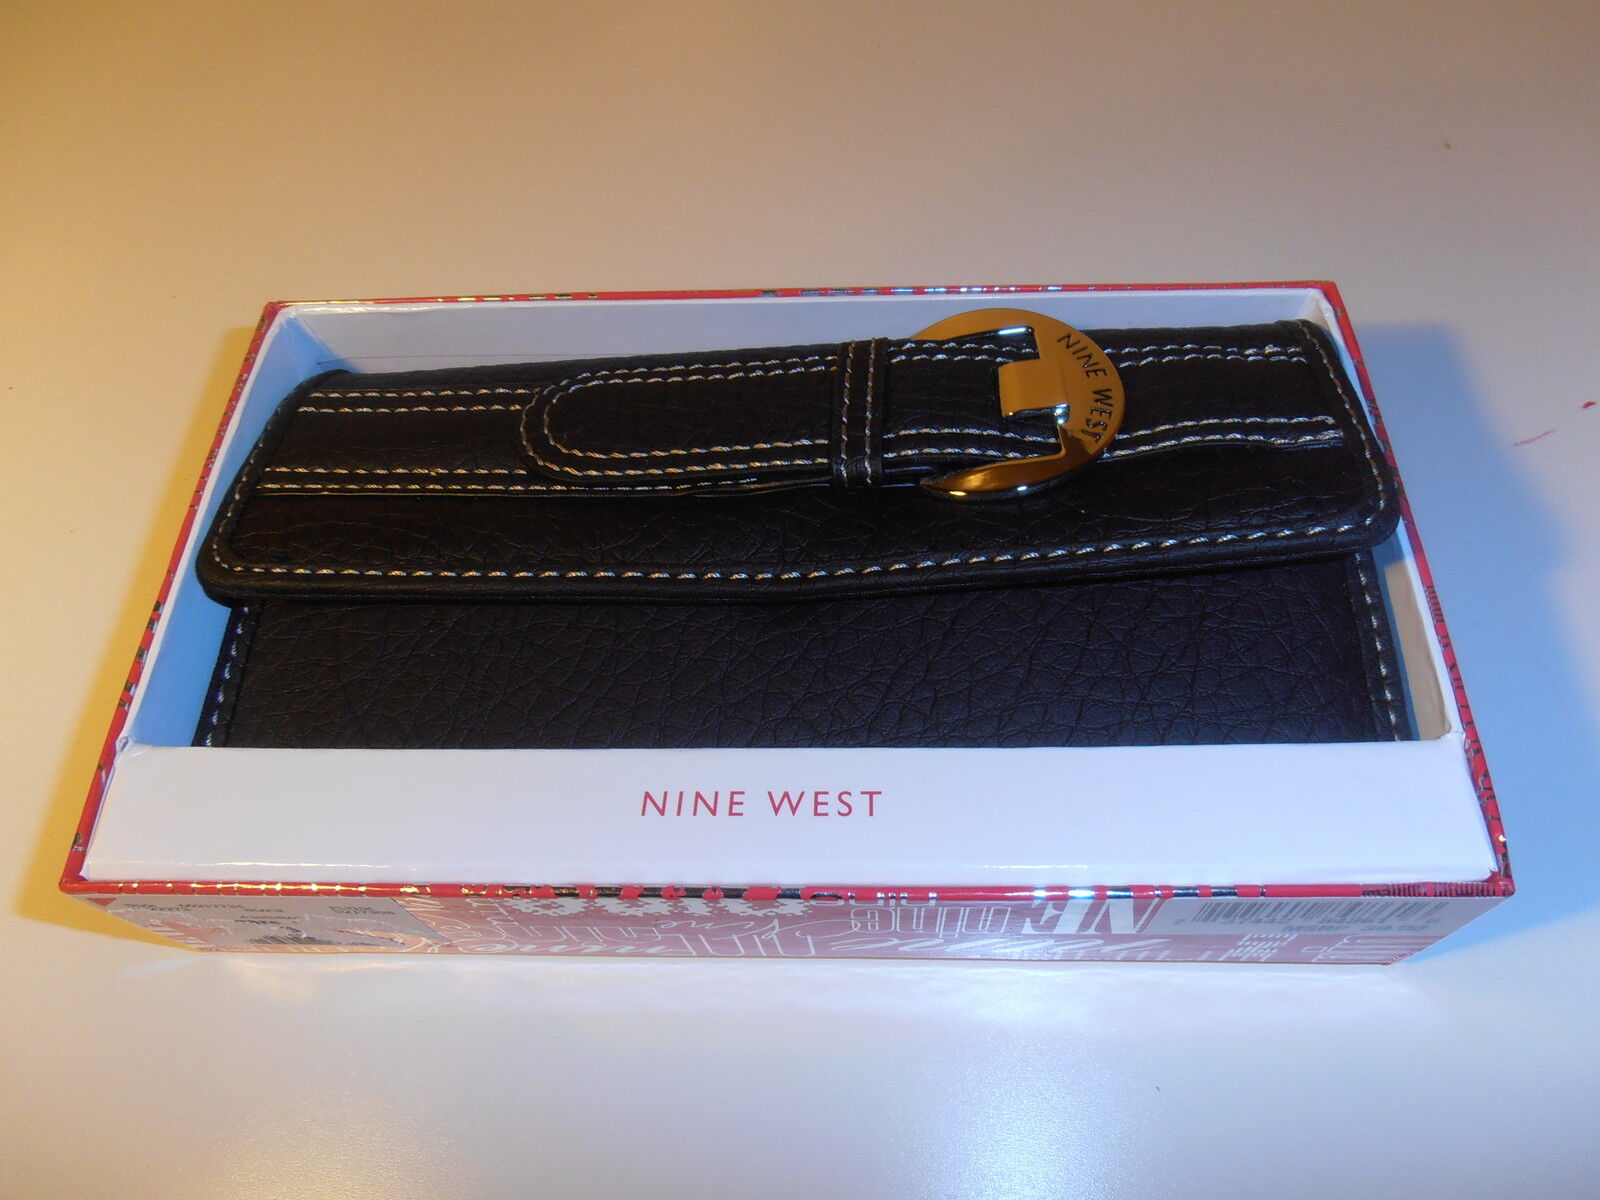 NINE WEST CHECKBOOK WALLET BLACK COLOR IN BOX NICE & CHEAP!!!